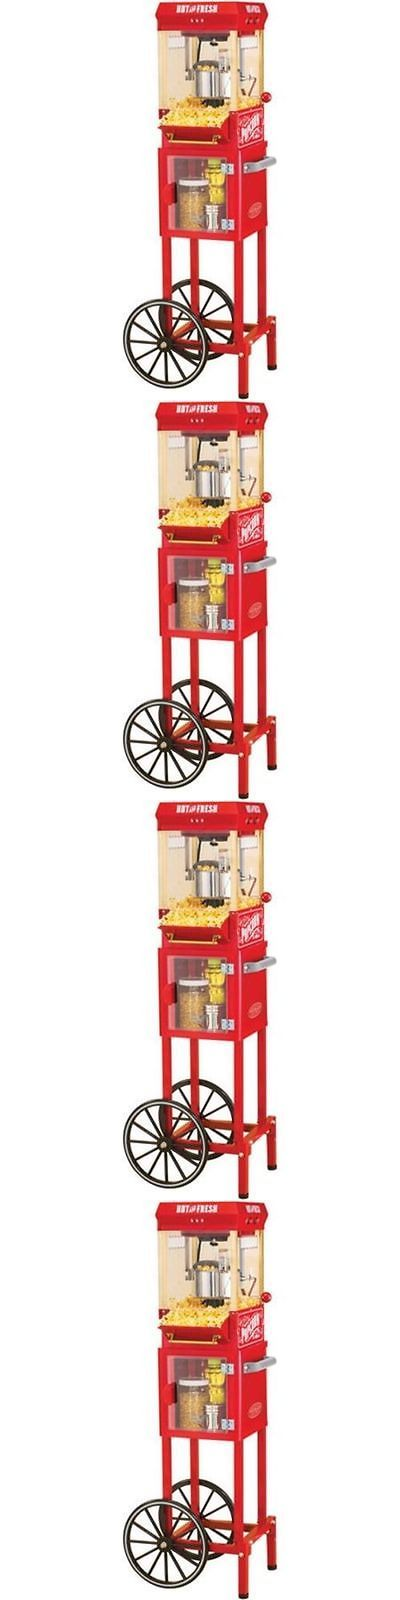 Popcorn Poppers 66752: Nostalgia Electrics Popcorn Cart Machine Popper Maker Vintage Red Stand Movie -> BUY IT NOW ONLY: $90.97 on eBay!